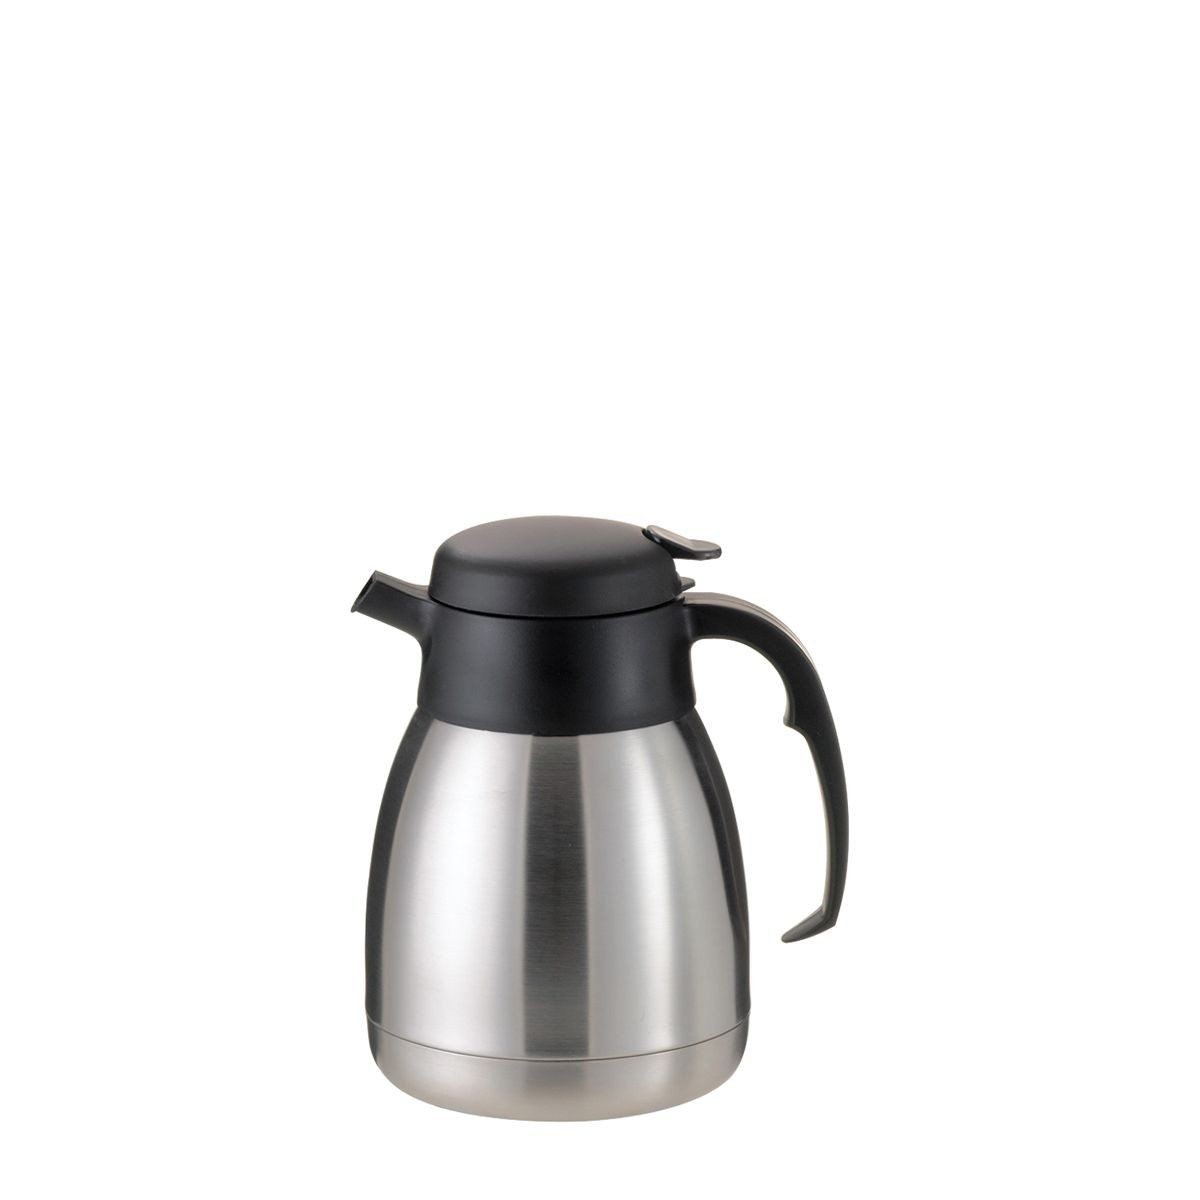 Service Ideas FVPC12 Steelvac Insulated Server 1.2 Liter